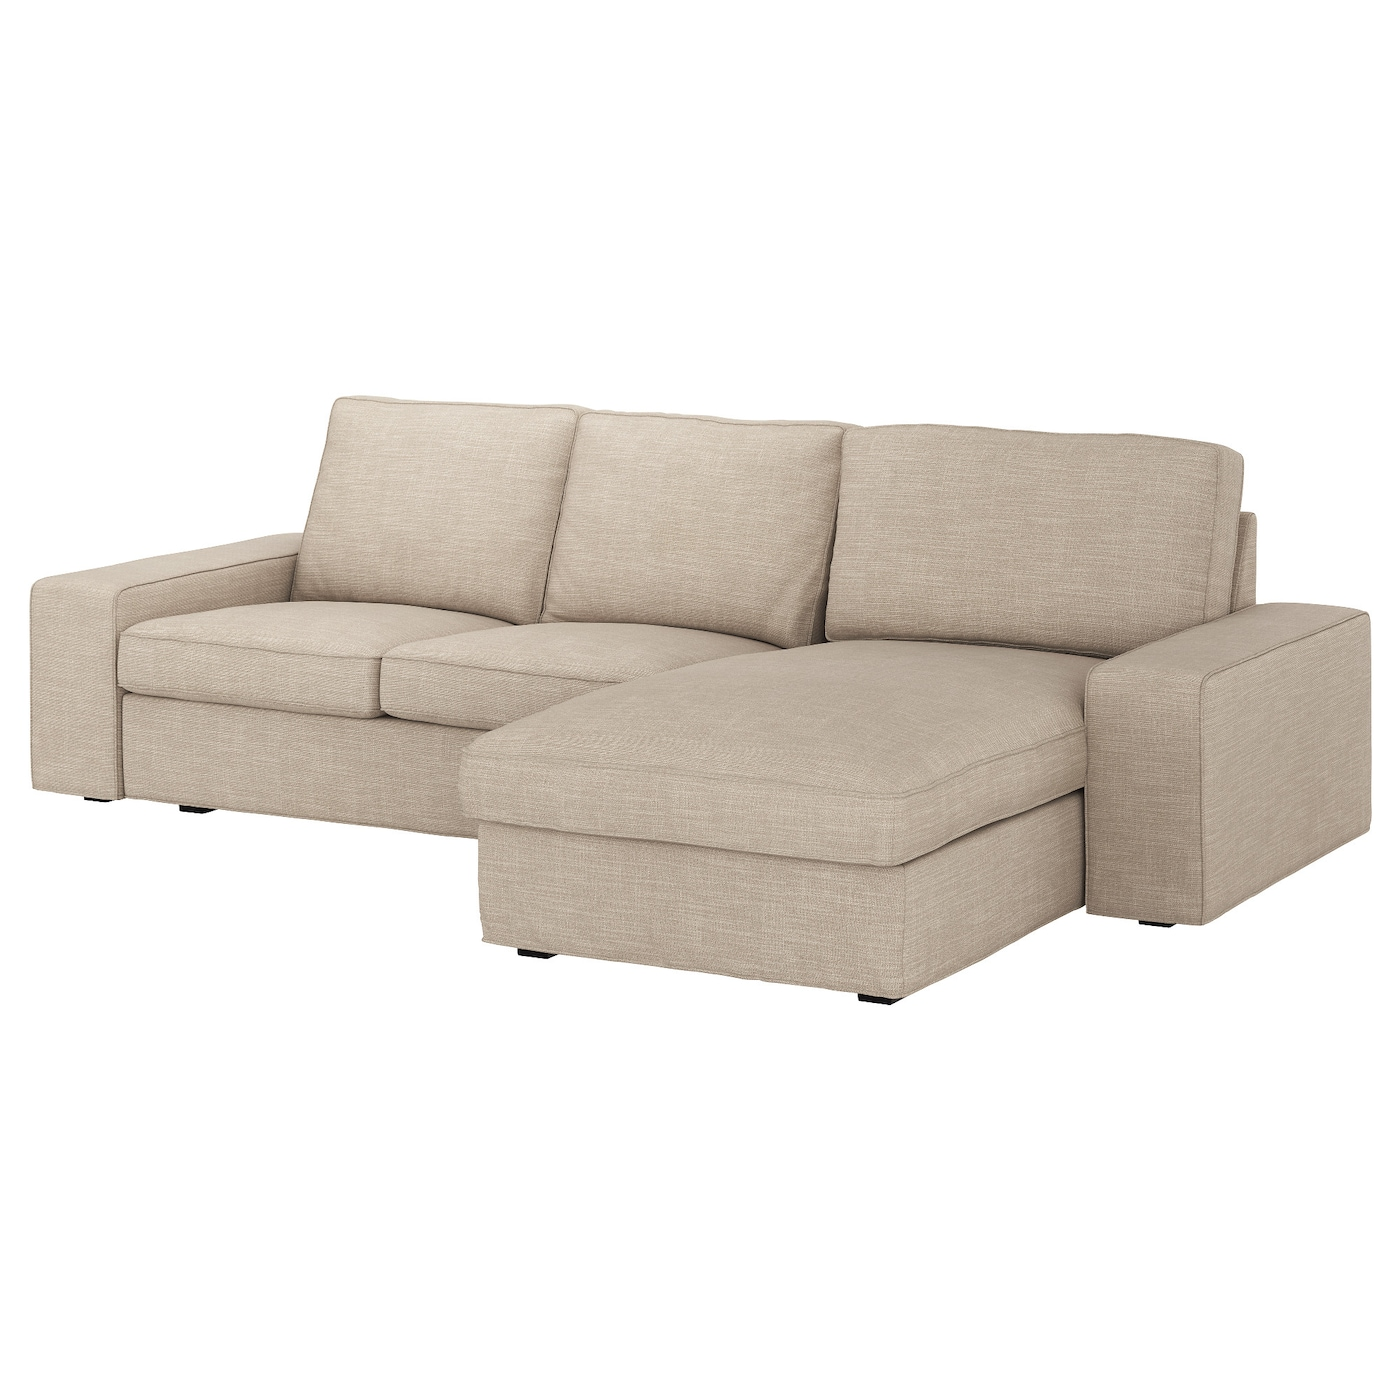 Kivik 3 seat sofa with chaise longue hillared beige ikea for 3 seater couch with chaise